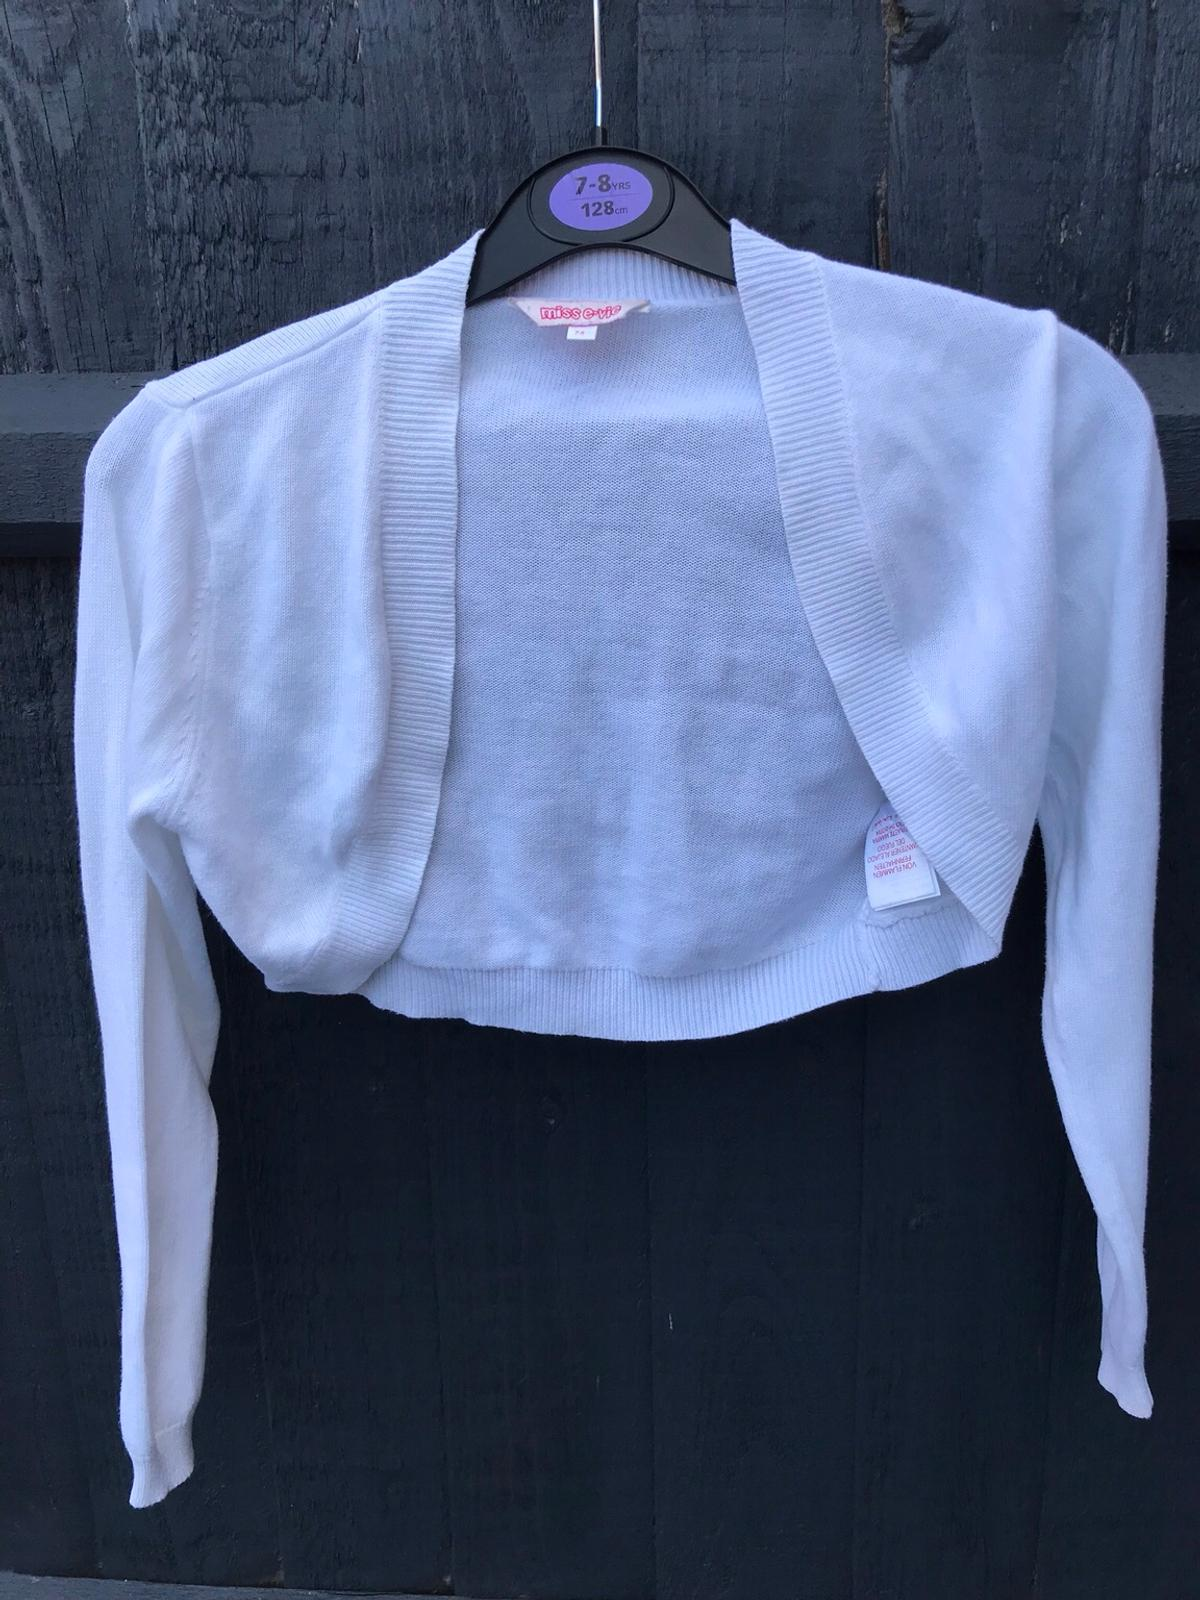 White bolero cardigan Age 7-8 Excellent condition Can deliver if local to louth